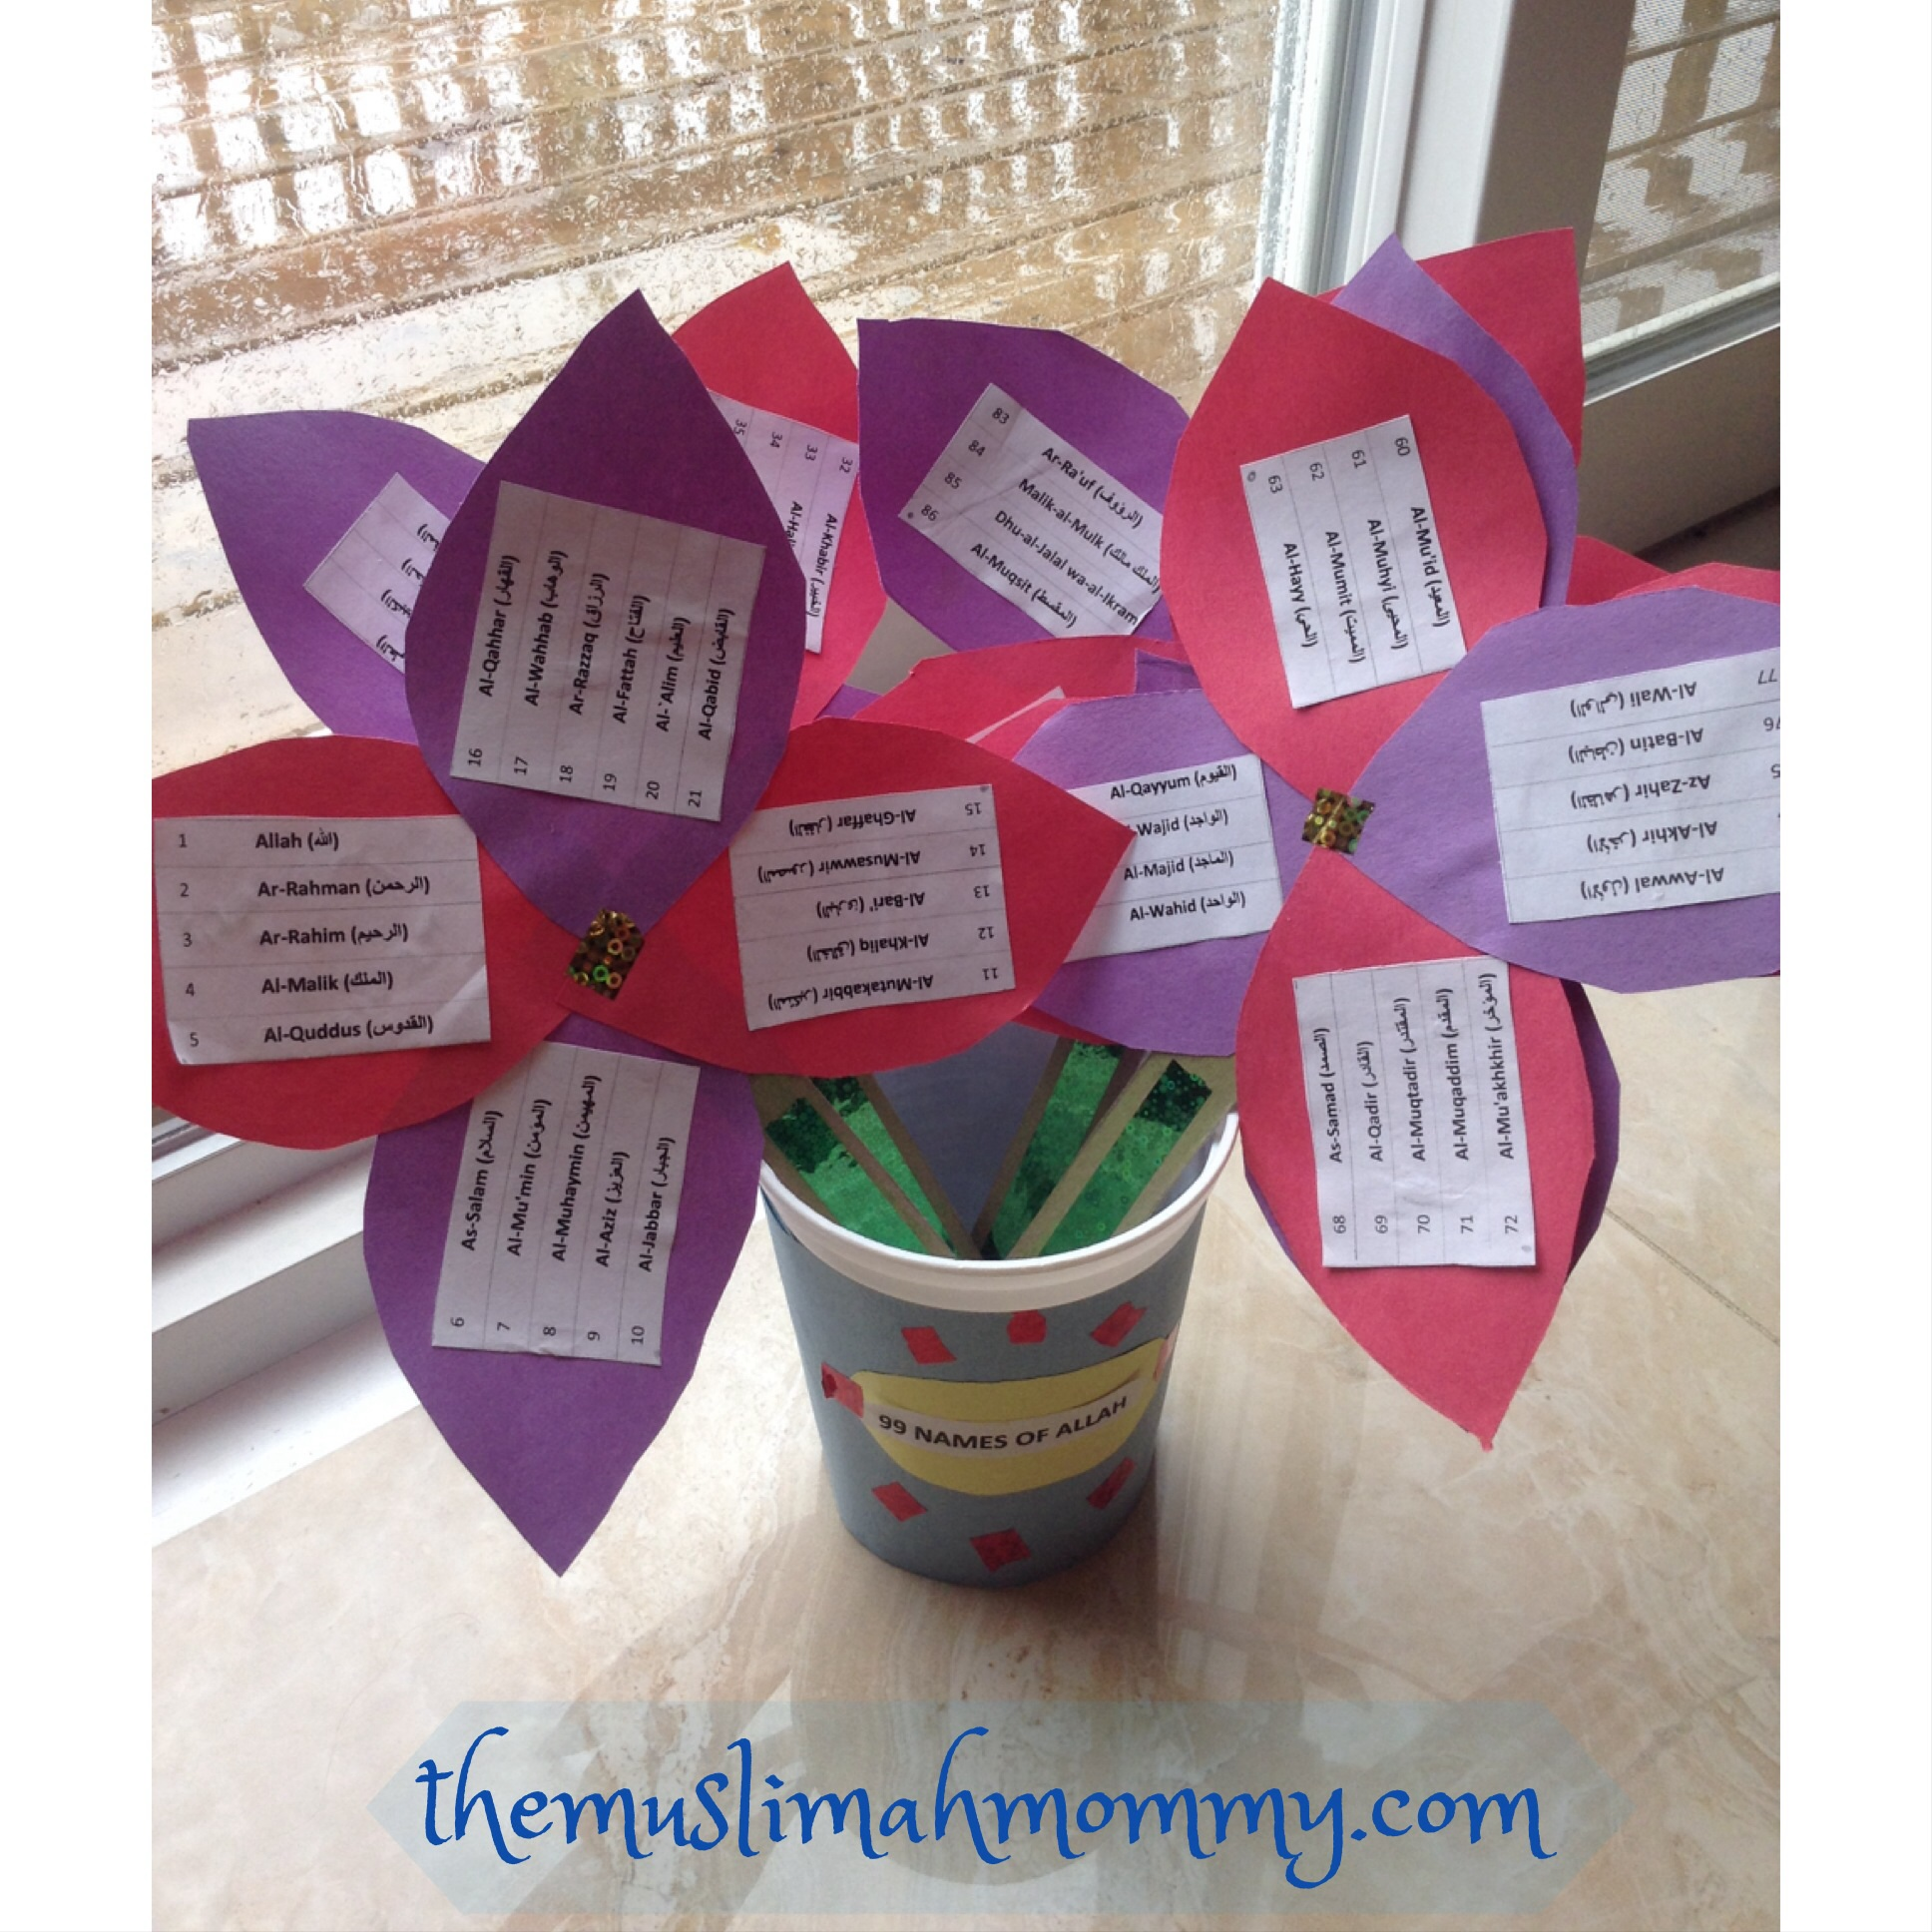 99 Names Of Allah, DIY Flowers In A Pot - Sumaira Z